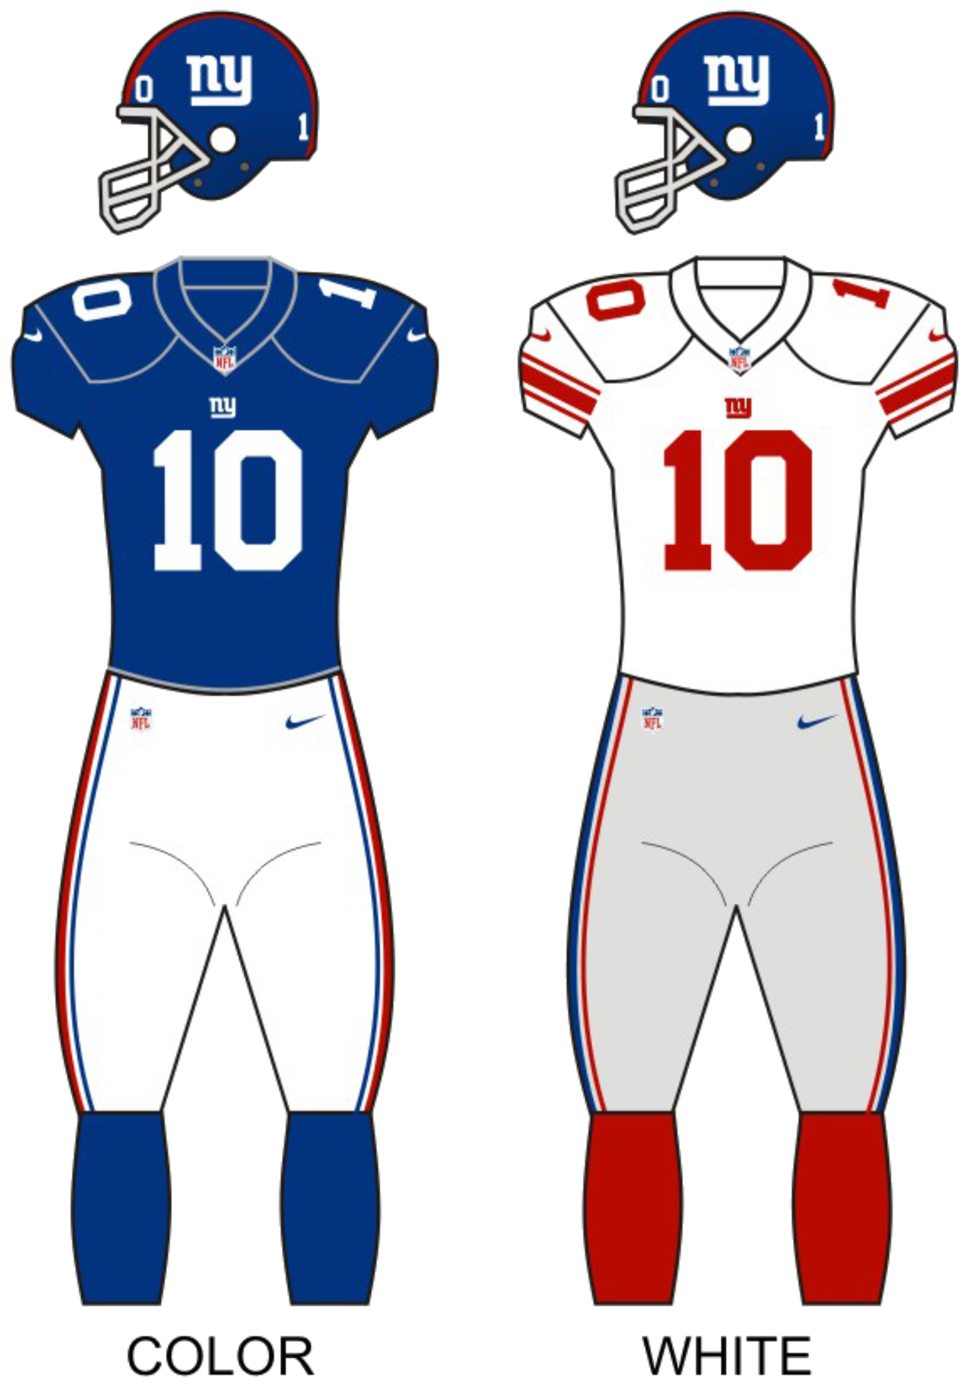 Giants uniforms12 nobrands